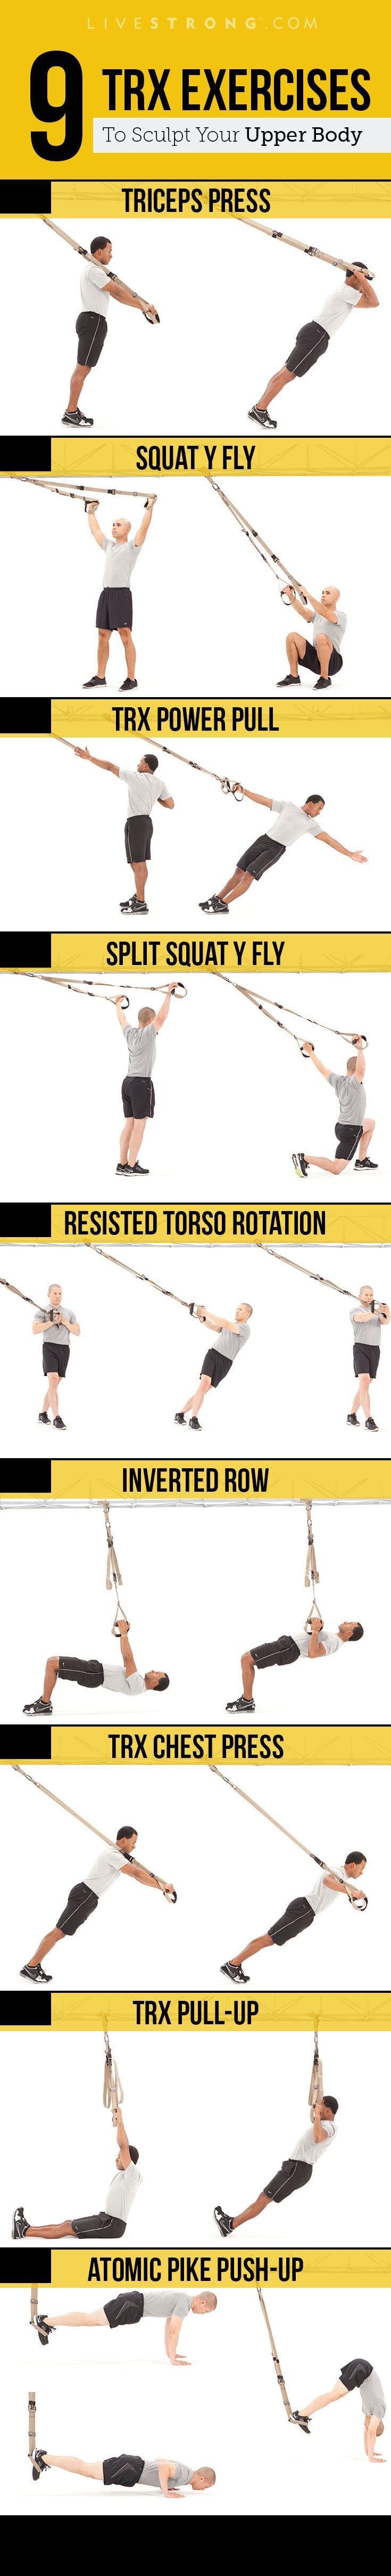 Get ripped with TRX.